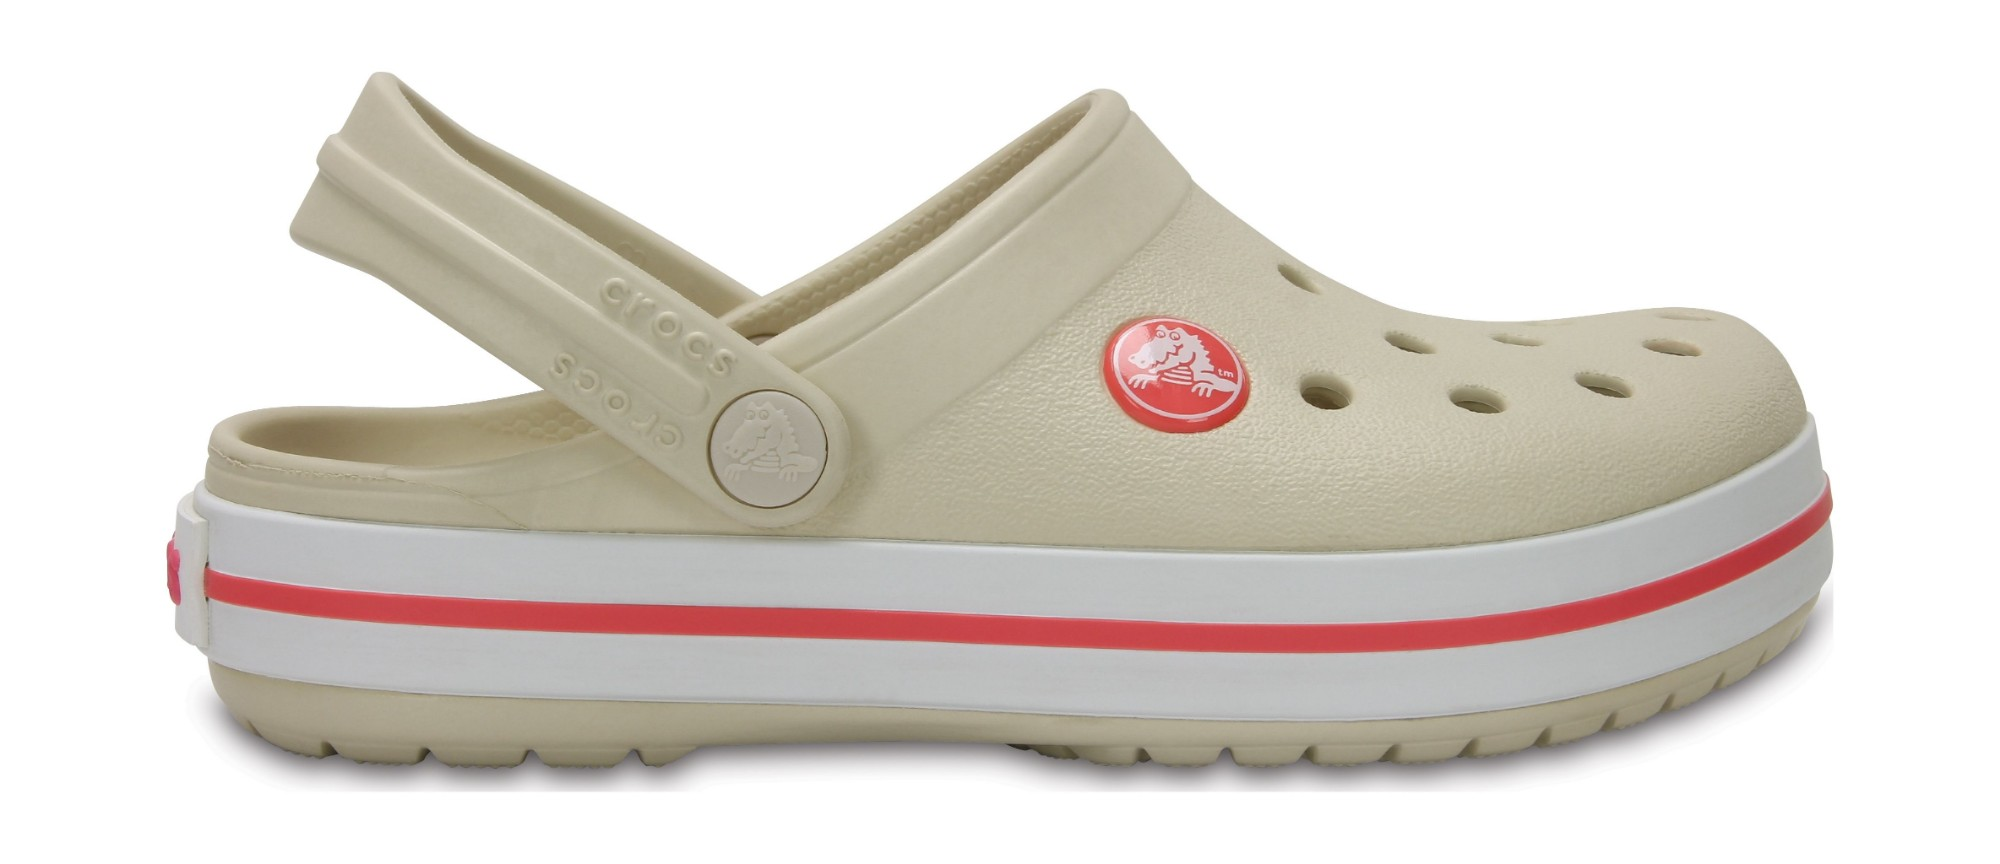 Crocs™ Kids' Crocband Clog Stucco/Melon 23